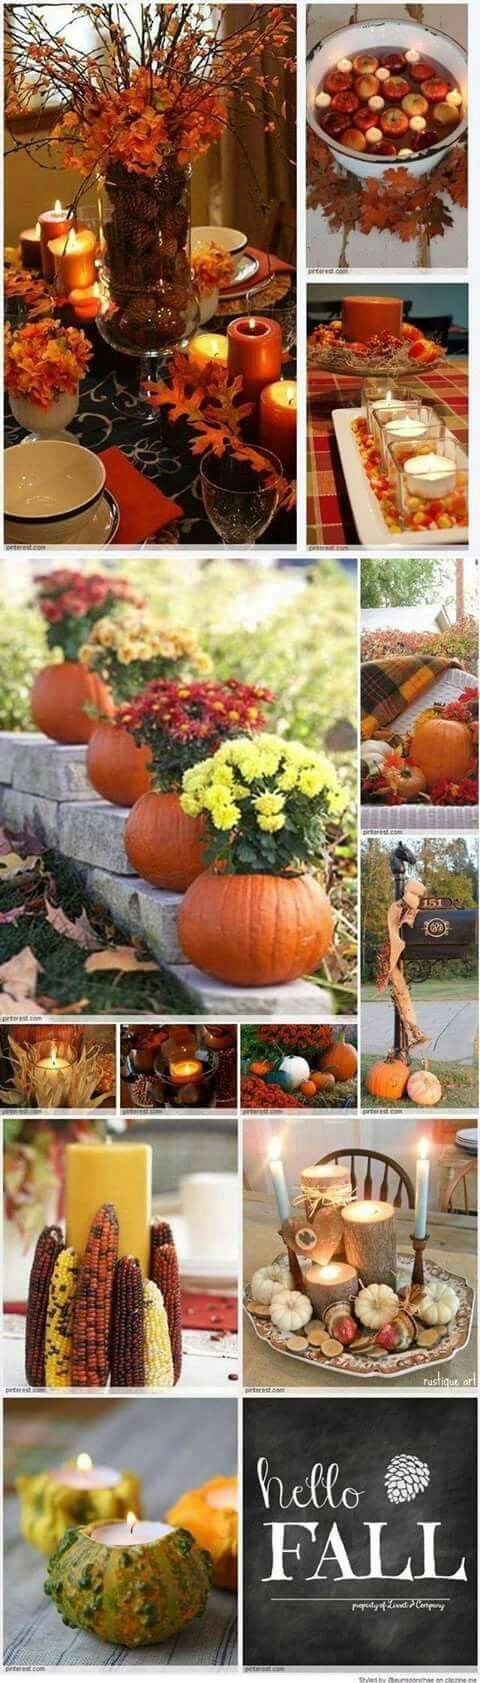 Thanksgiving outdoor decor - Fall Decorating Ideas That You Can Use For All Your Thanksgiving Festivities And Family Parties These Are Beautiful Fall Tablescapes